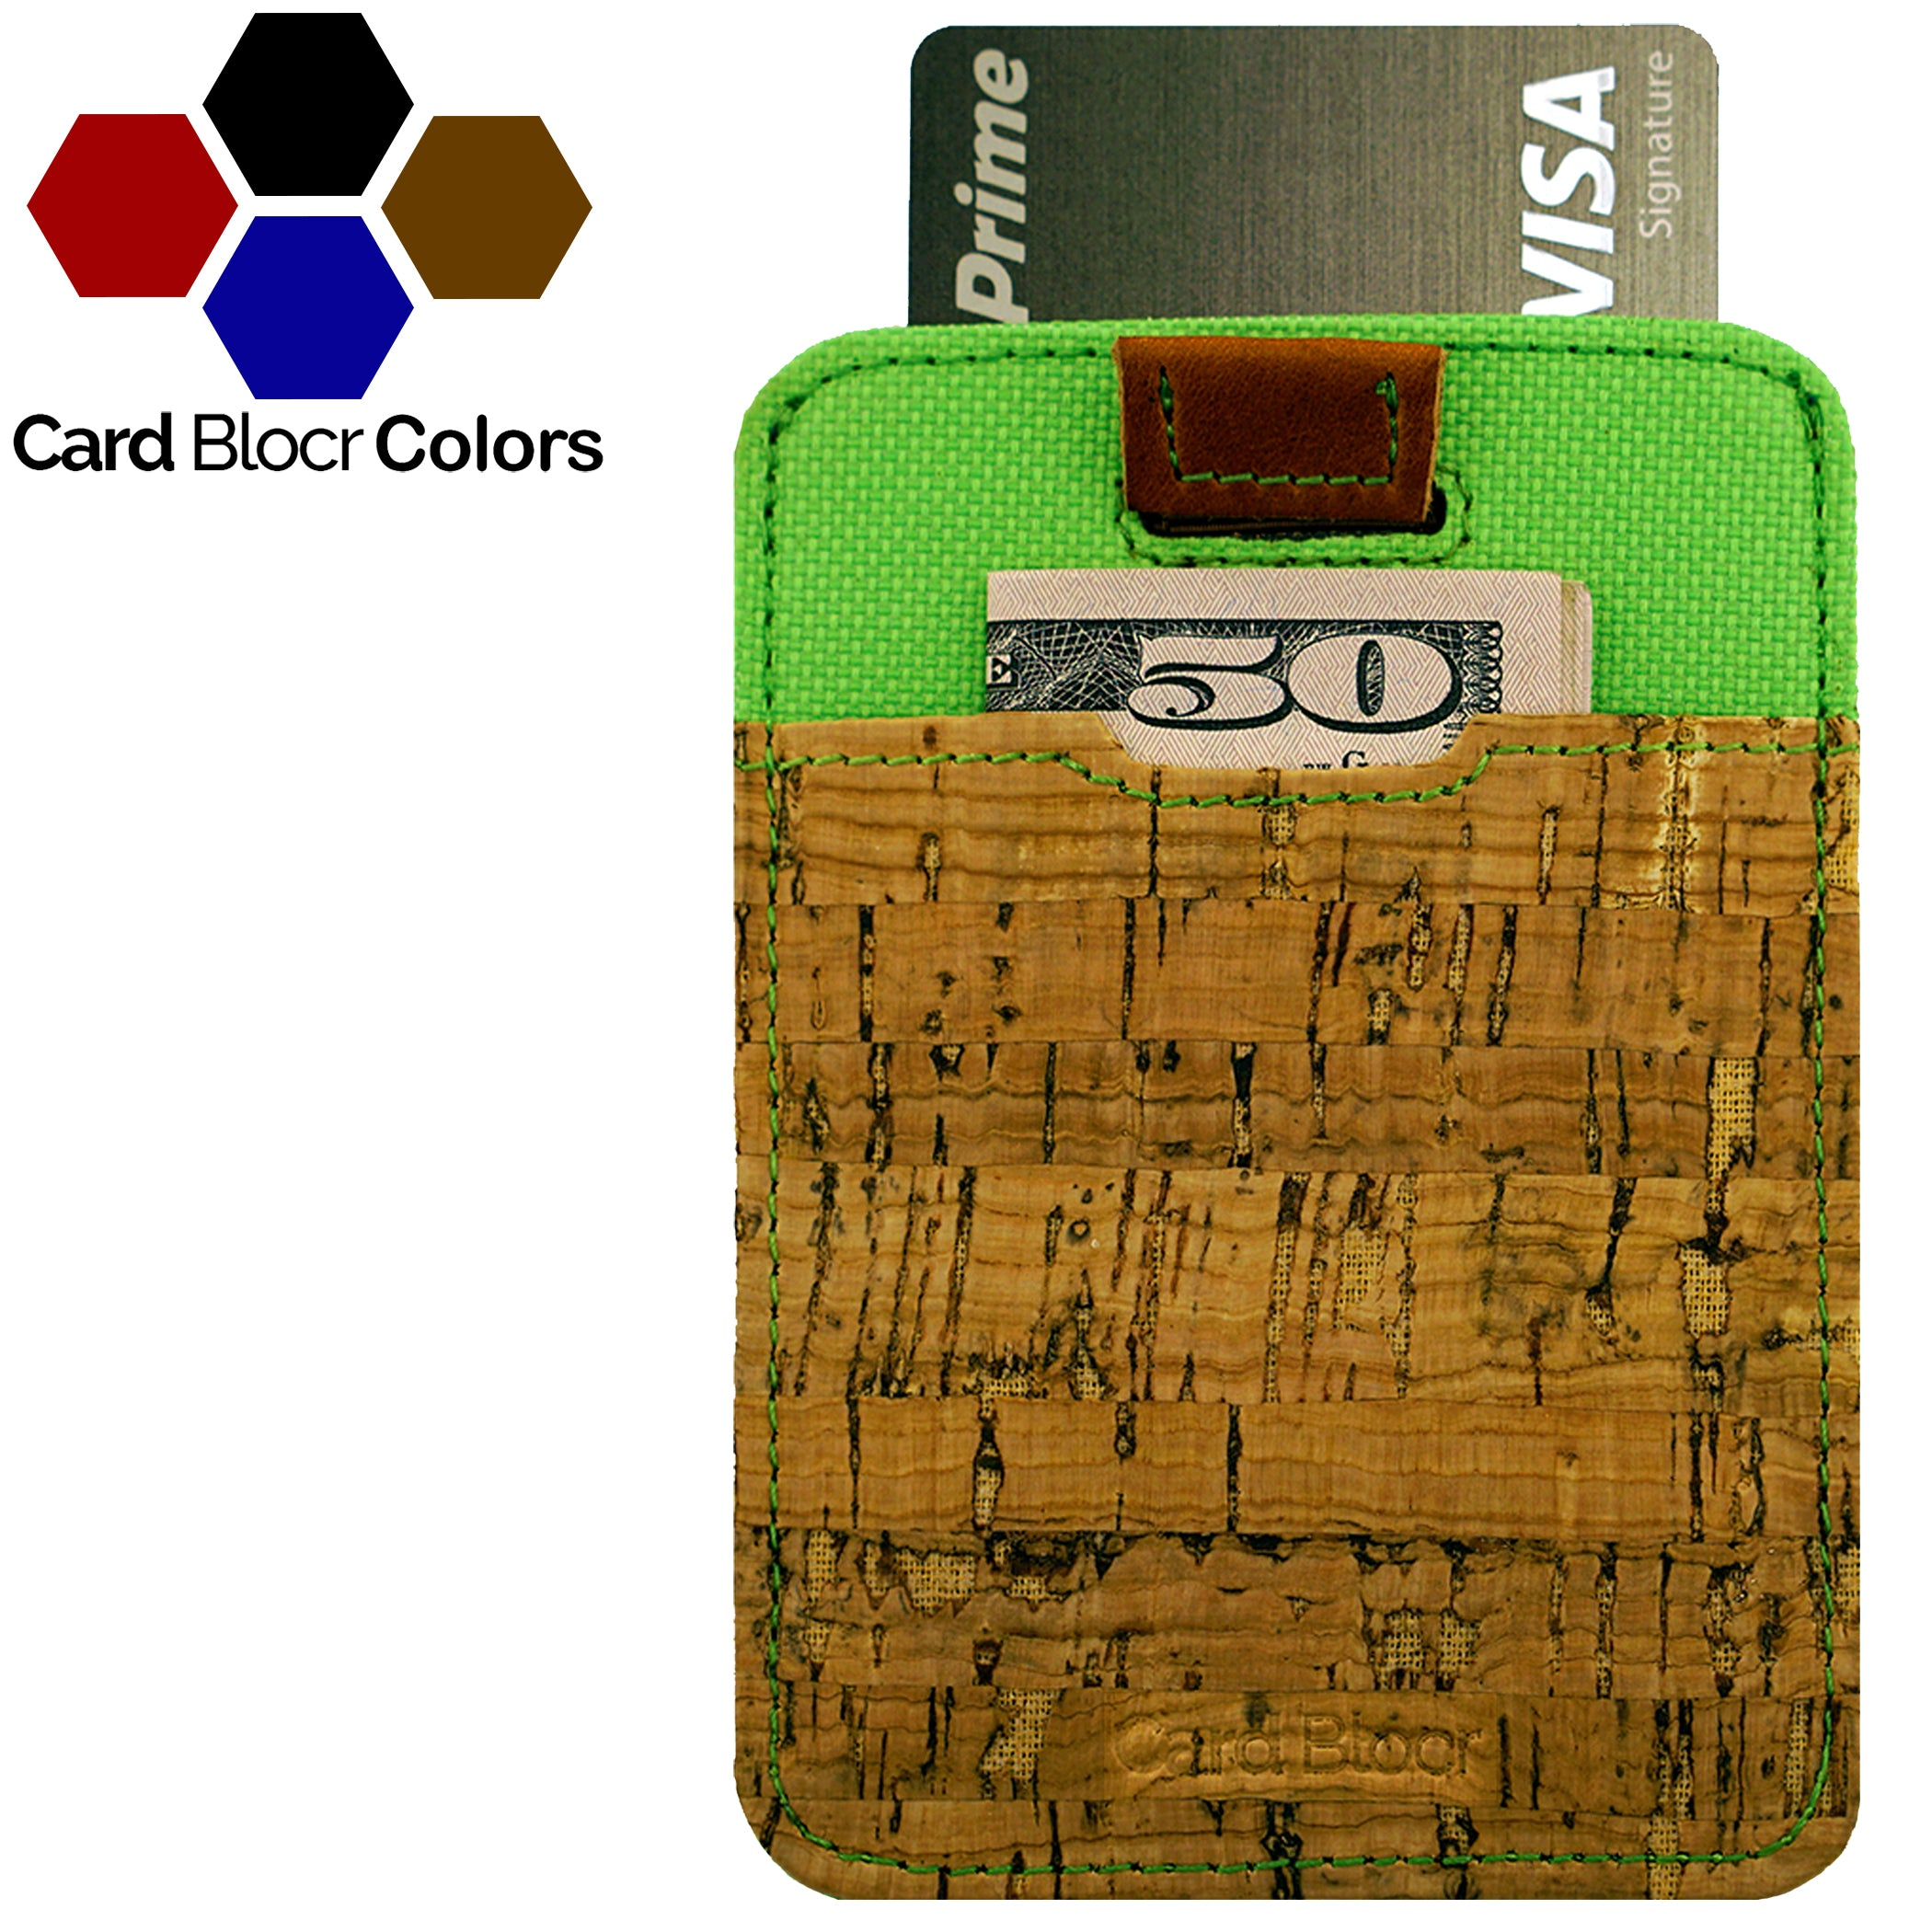 Card Blocr Pull Tab Wallet in Cork & Green Nylon | RFID Blocking Wallet